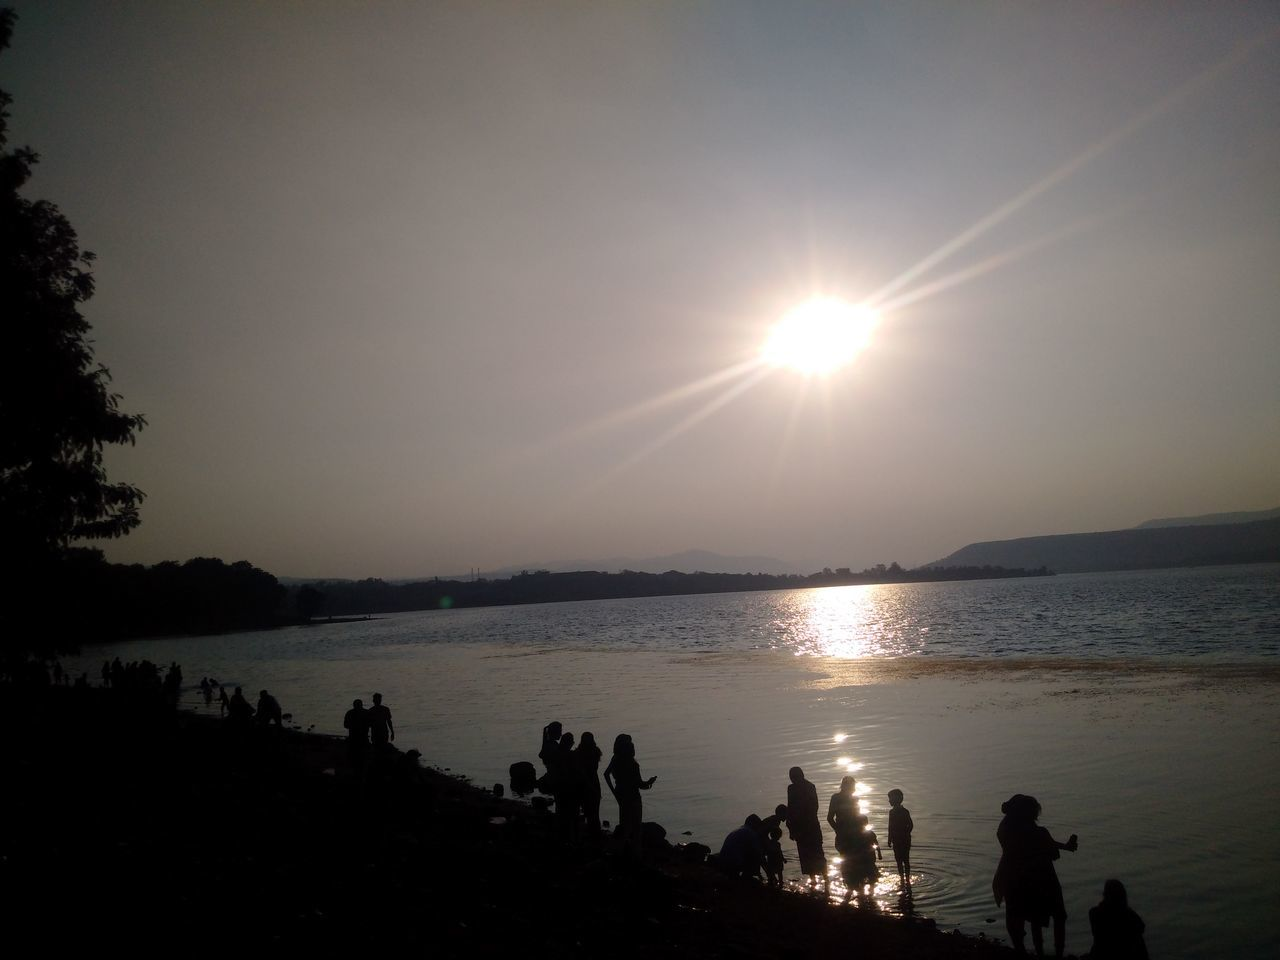 sun, sunset, silhouette, sky, nature, sunlight, water, beauty in nature, scenics, sea, outdoors, scenery, no people